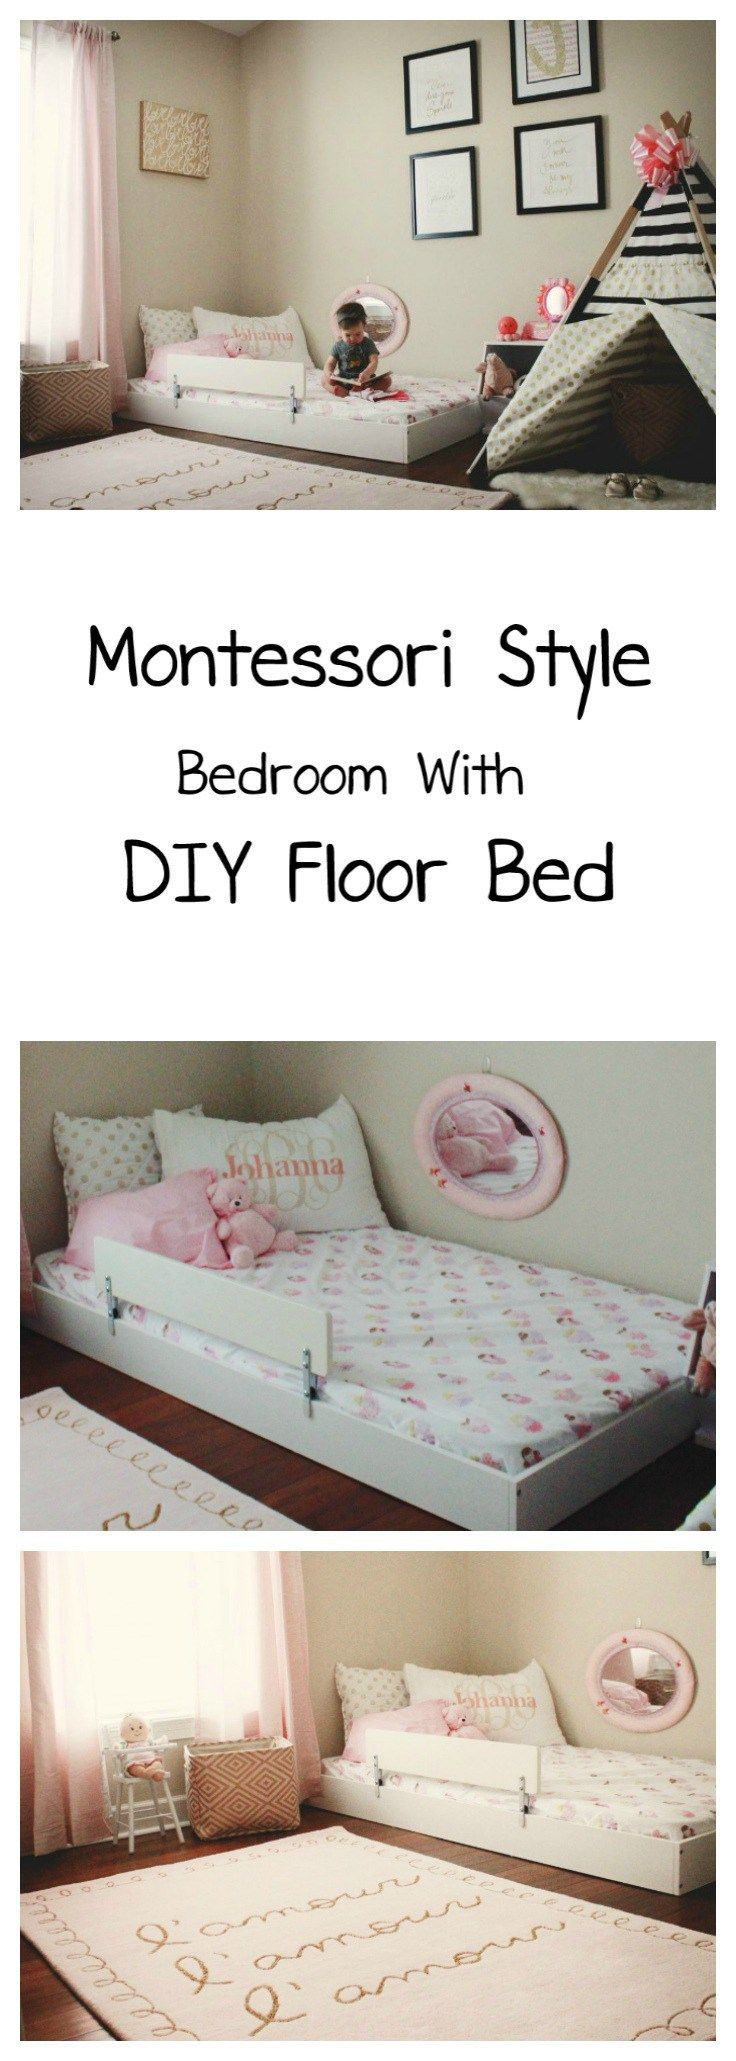 44 best montessori bedroom style images on pinterest montessori